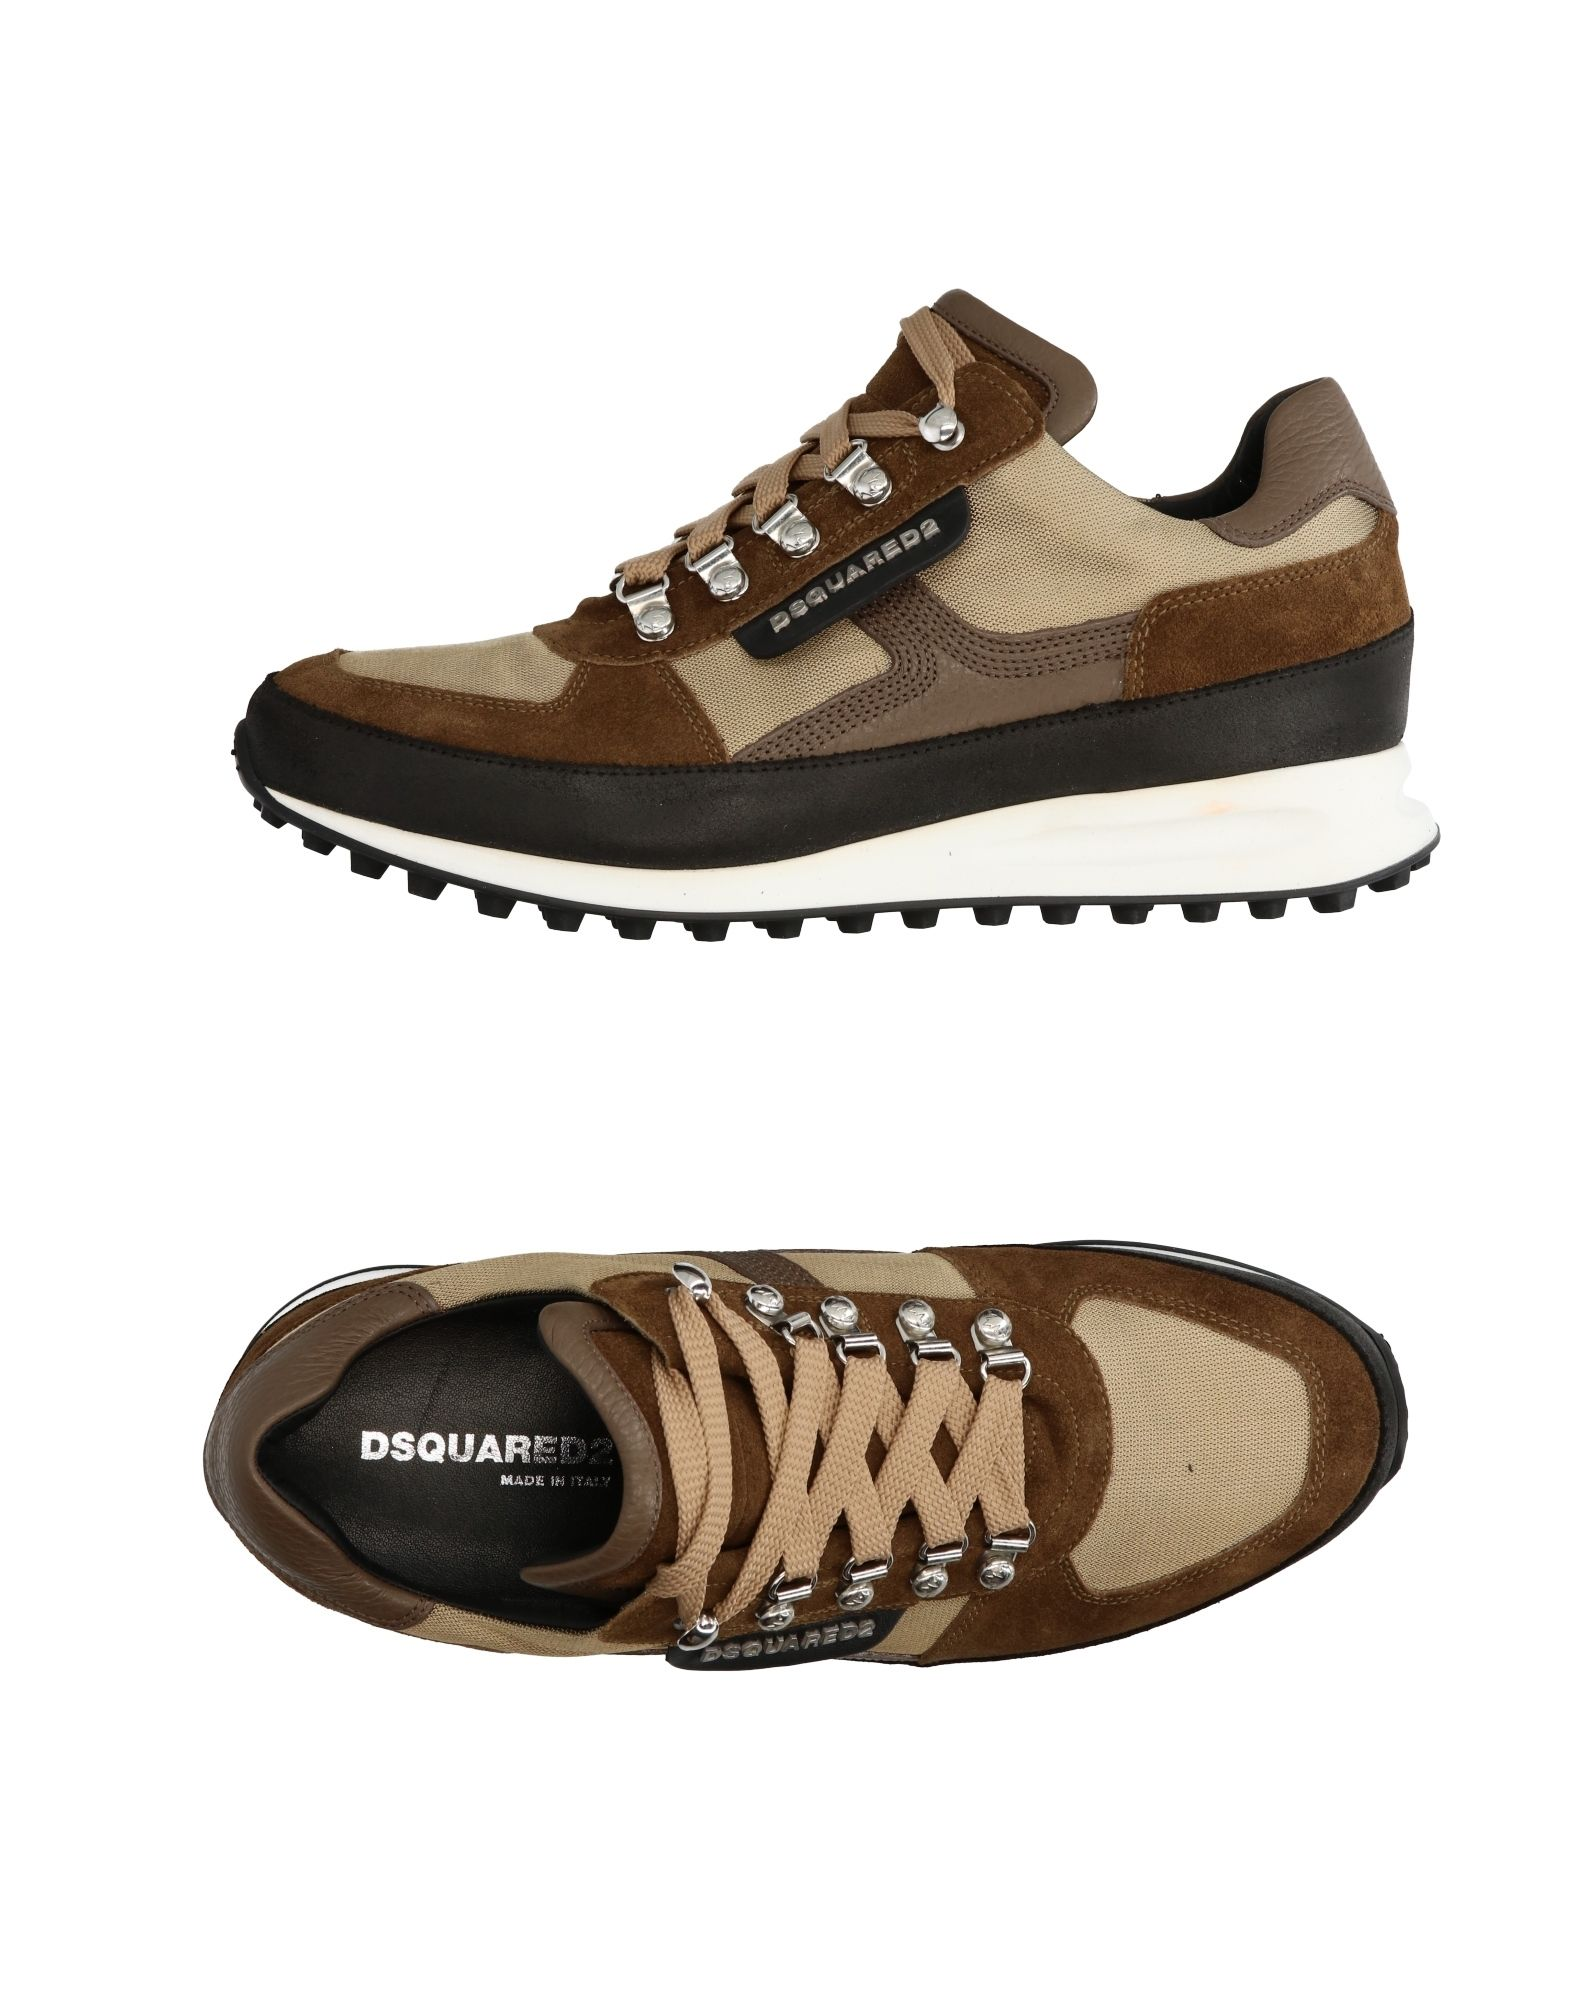 Dsquared2 11297794NG Sneakers Herren  11297794NG Dsquared2 Gute Qualität beliebte Schuhe 3f3375